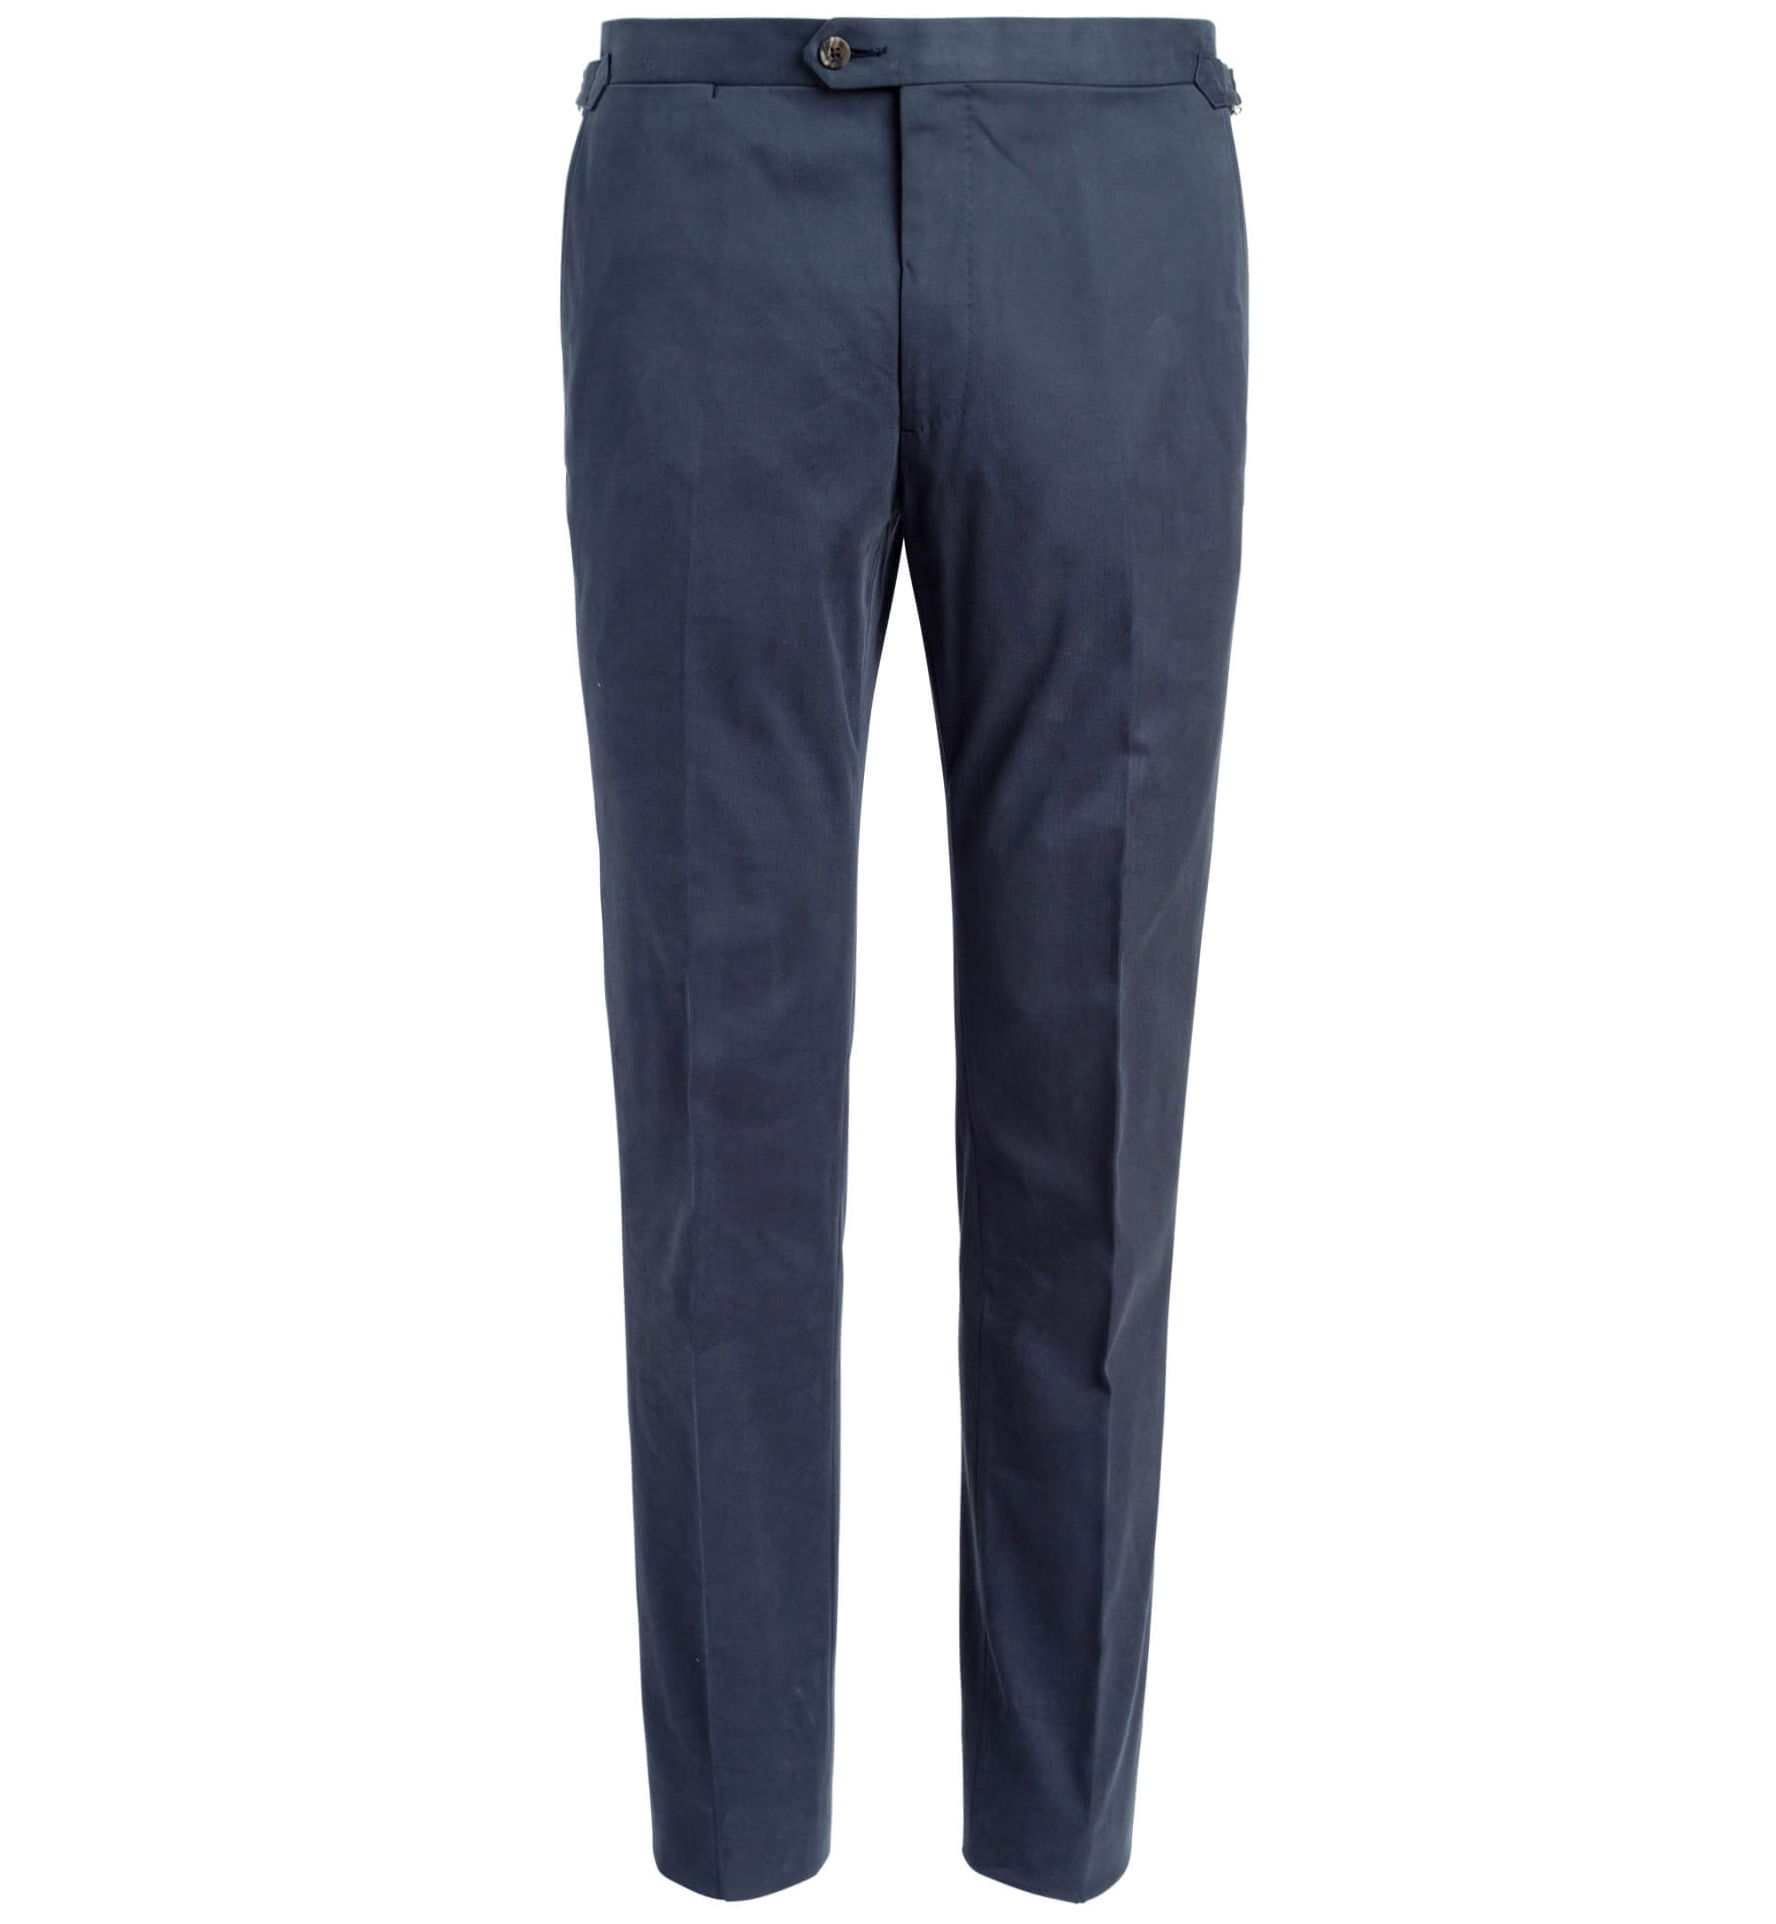 Zoom Image of Allen Navy Stretch Cotton Trouser